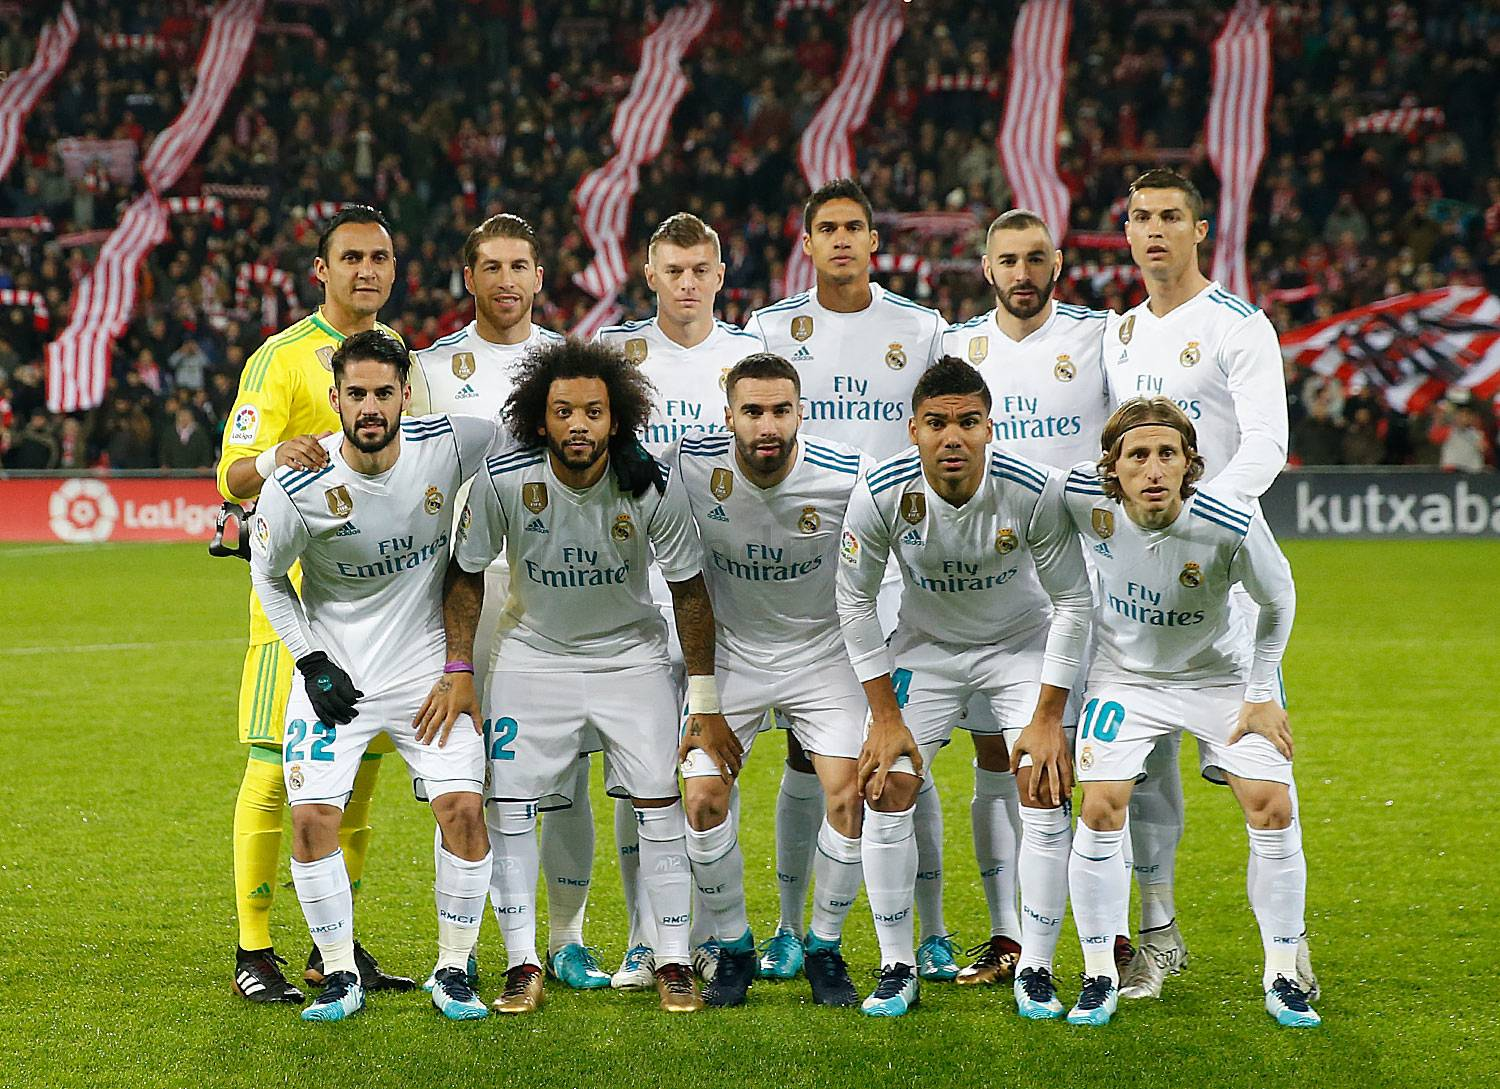 Real Madrid - Athletic Club - Real Madrid - 02-12-2017